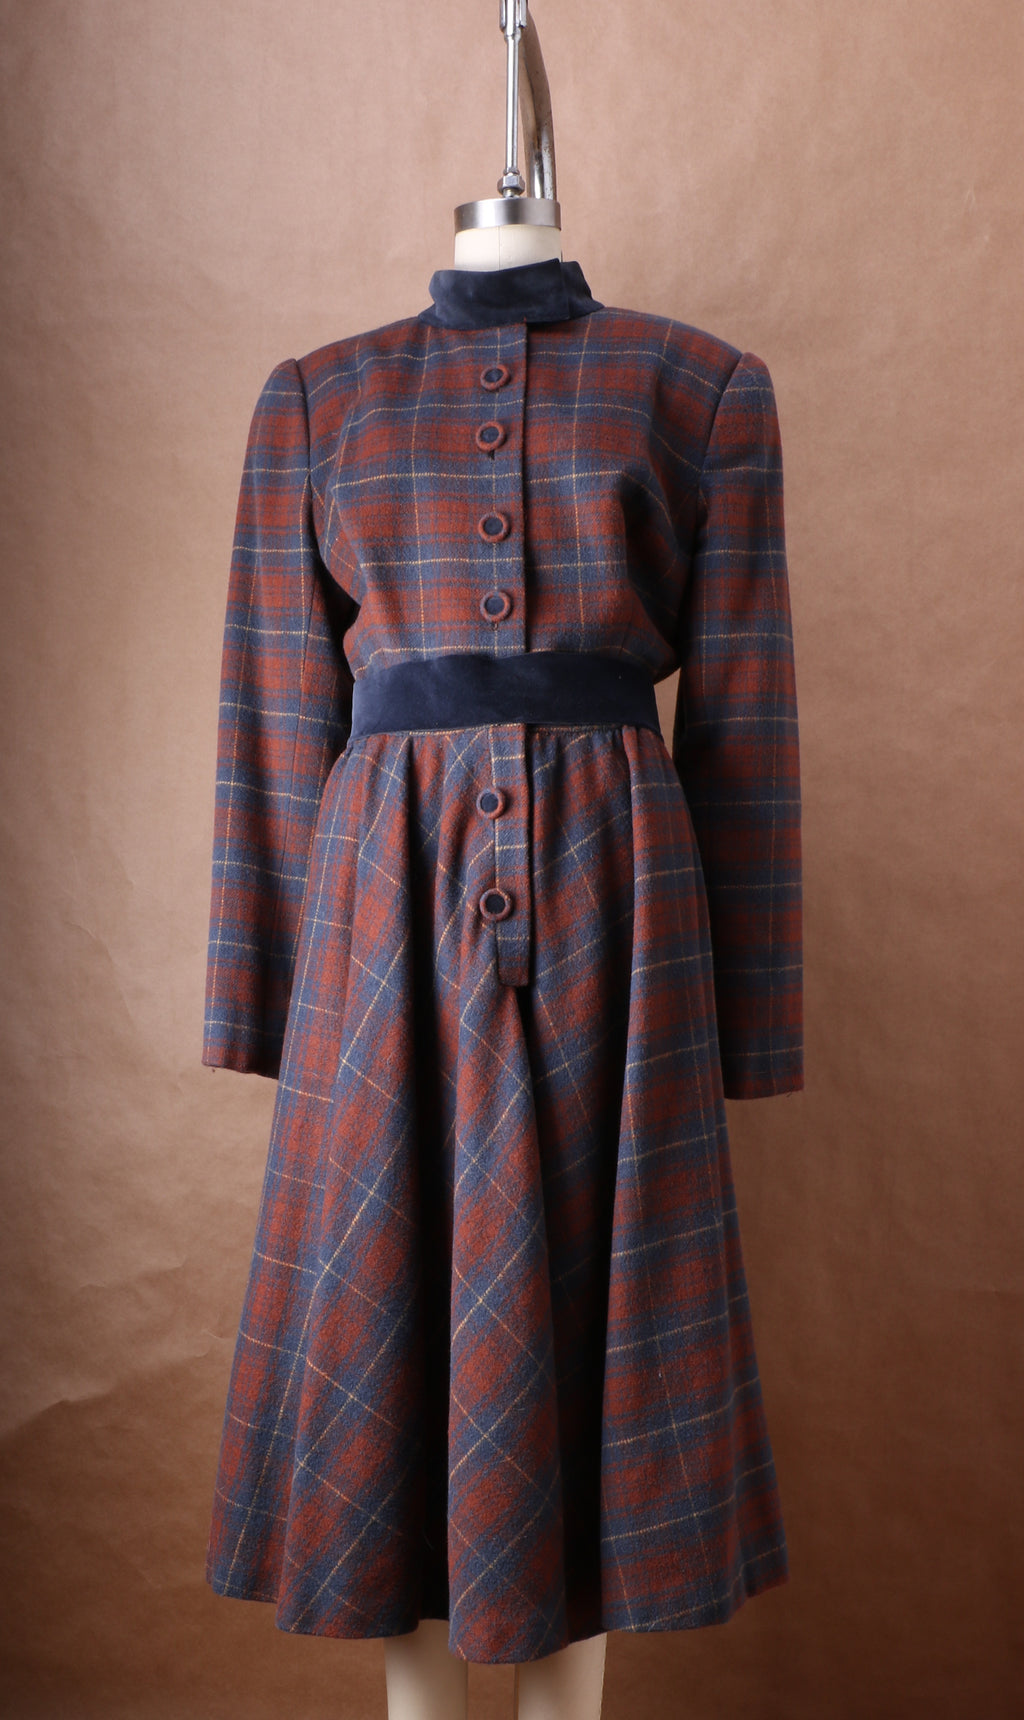 Arnold Scaasi Couture Wool Plaid Shirt Dress c. 1980